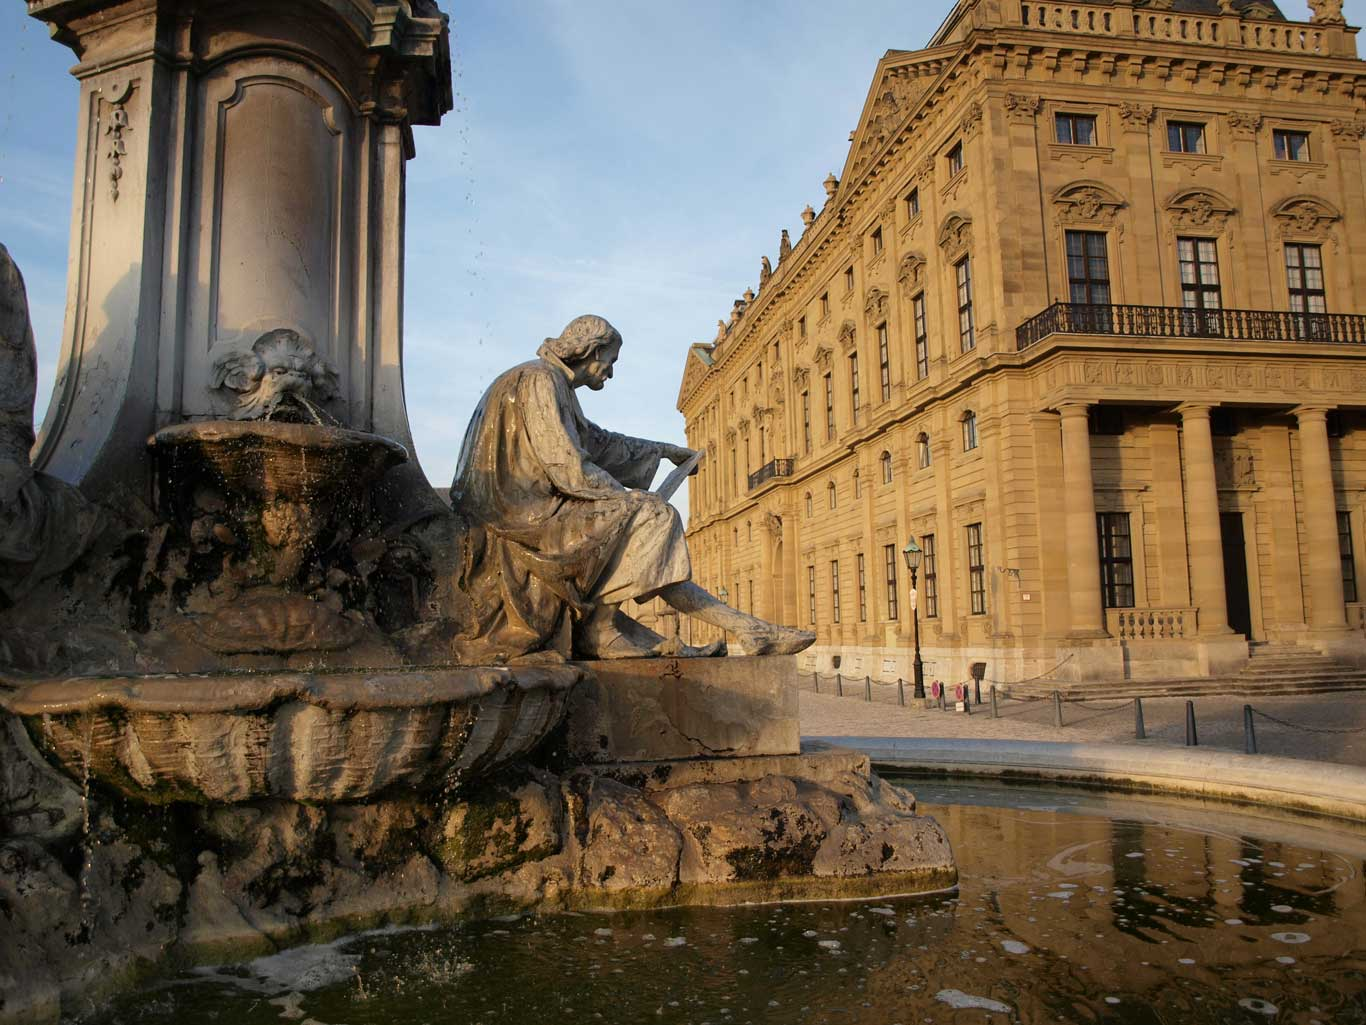 The Frankonia fountain in front of the  Würzburger Residenz